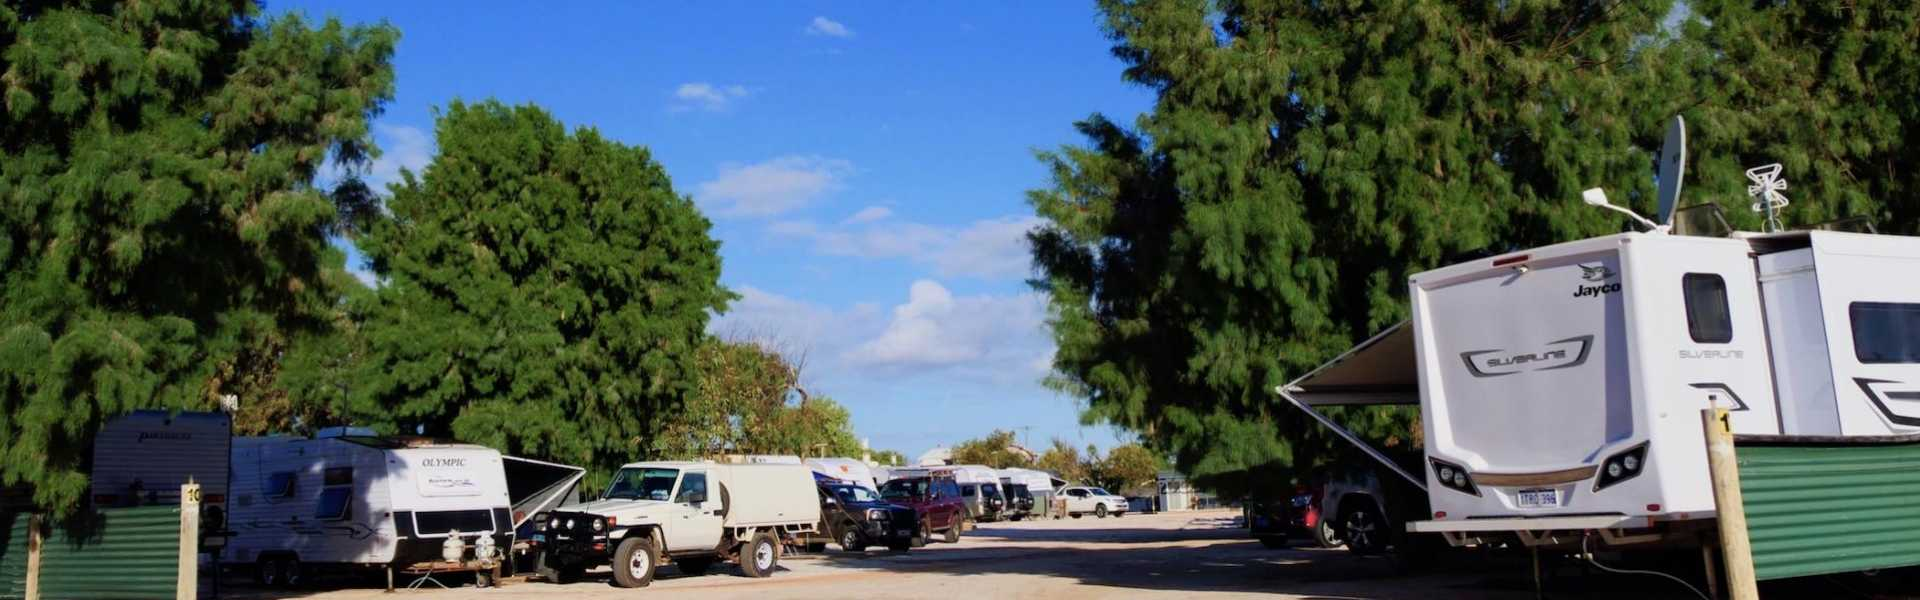 Kui Parks, Shark Bay Caravan Park, Denham, Sites